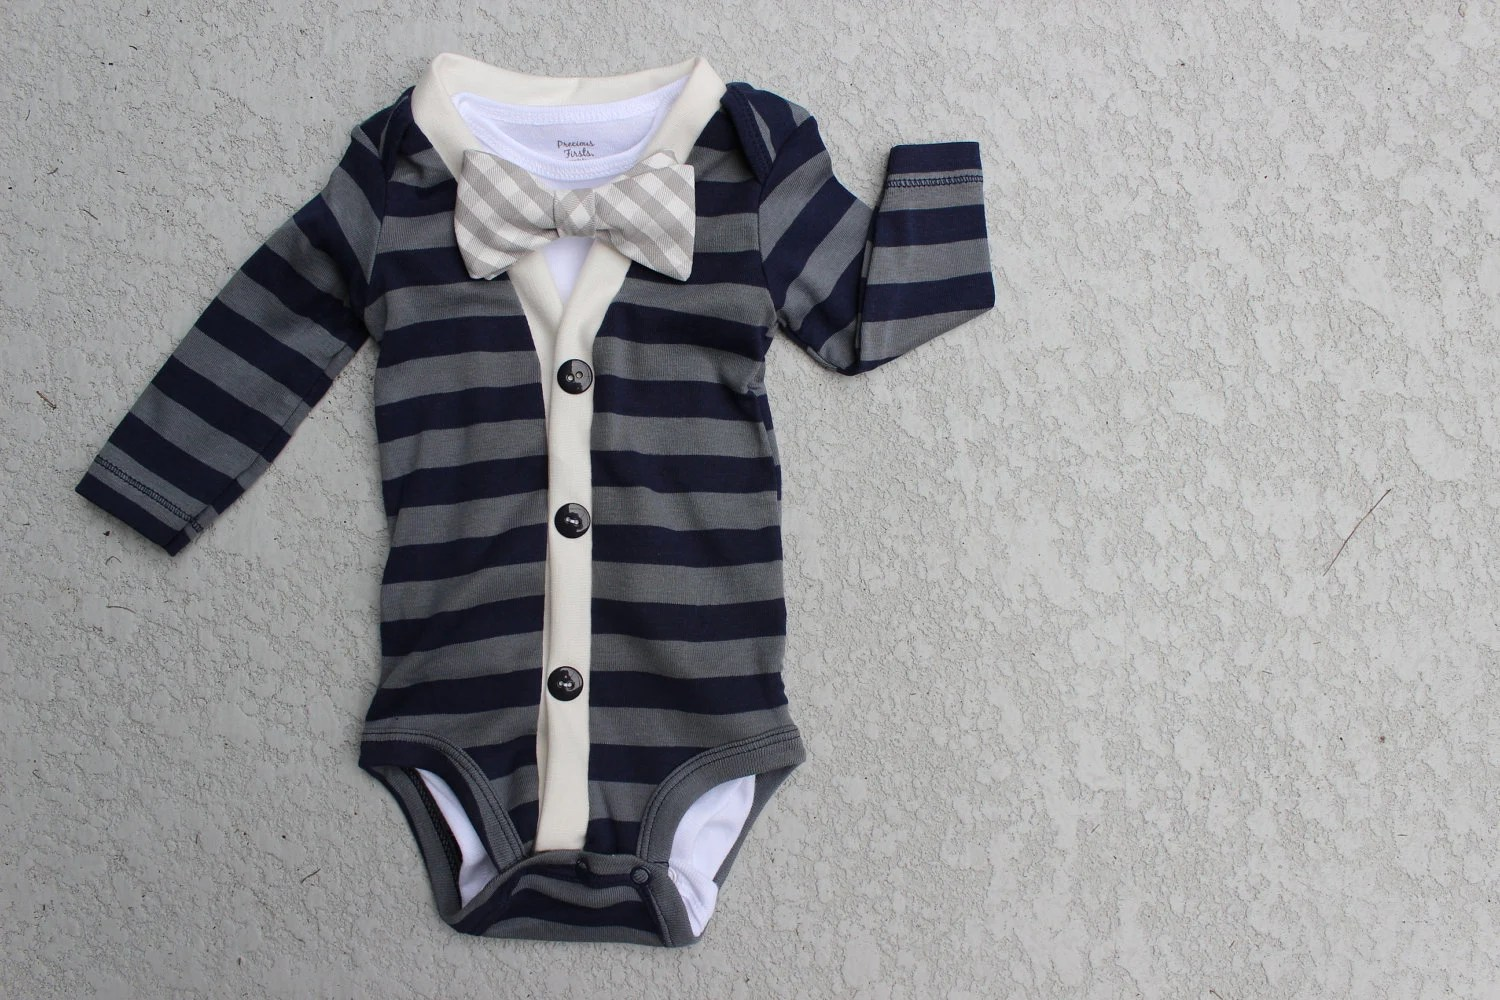 Cardigan and Bow Tie Onesie Set - Navy and Grey Gingham - Trendy Baby Boy